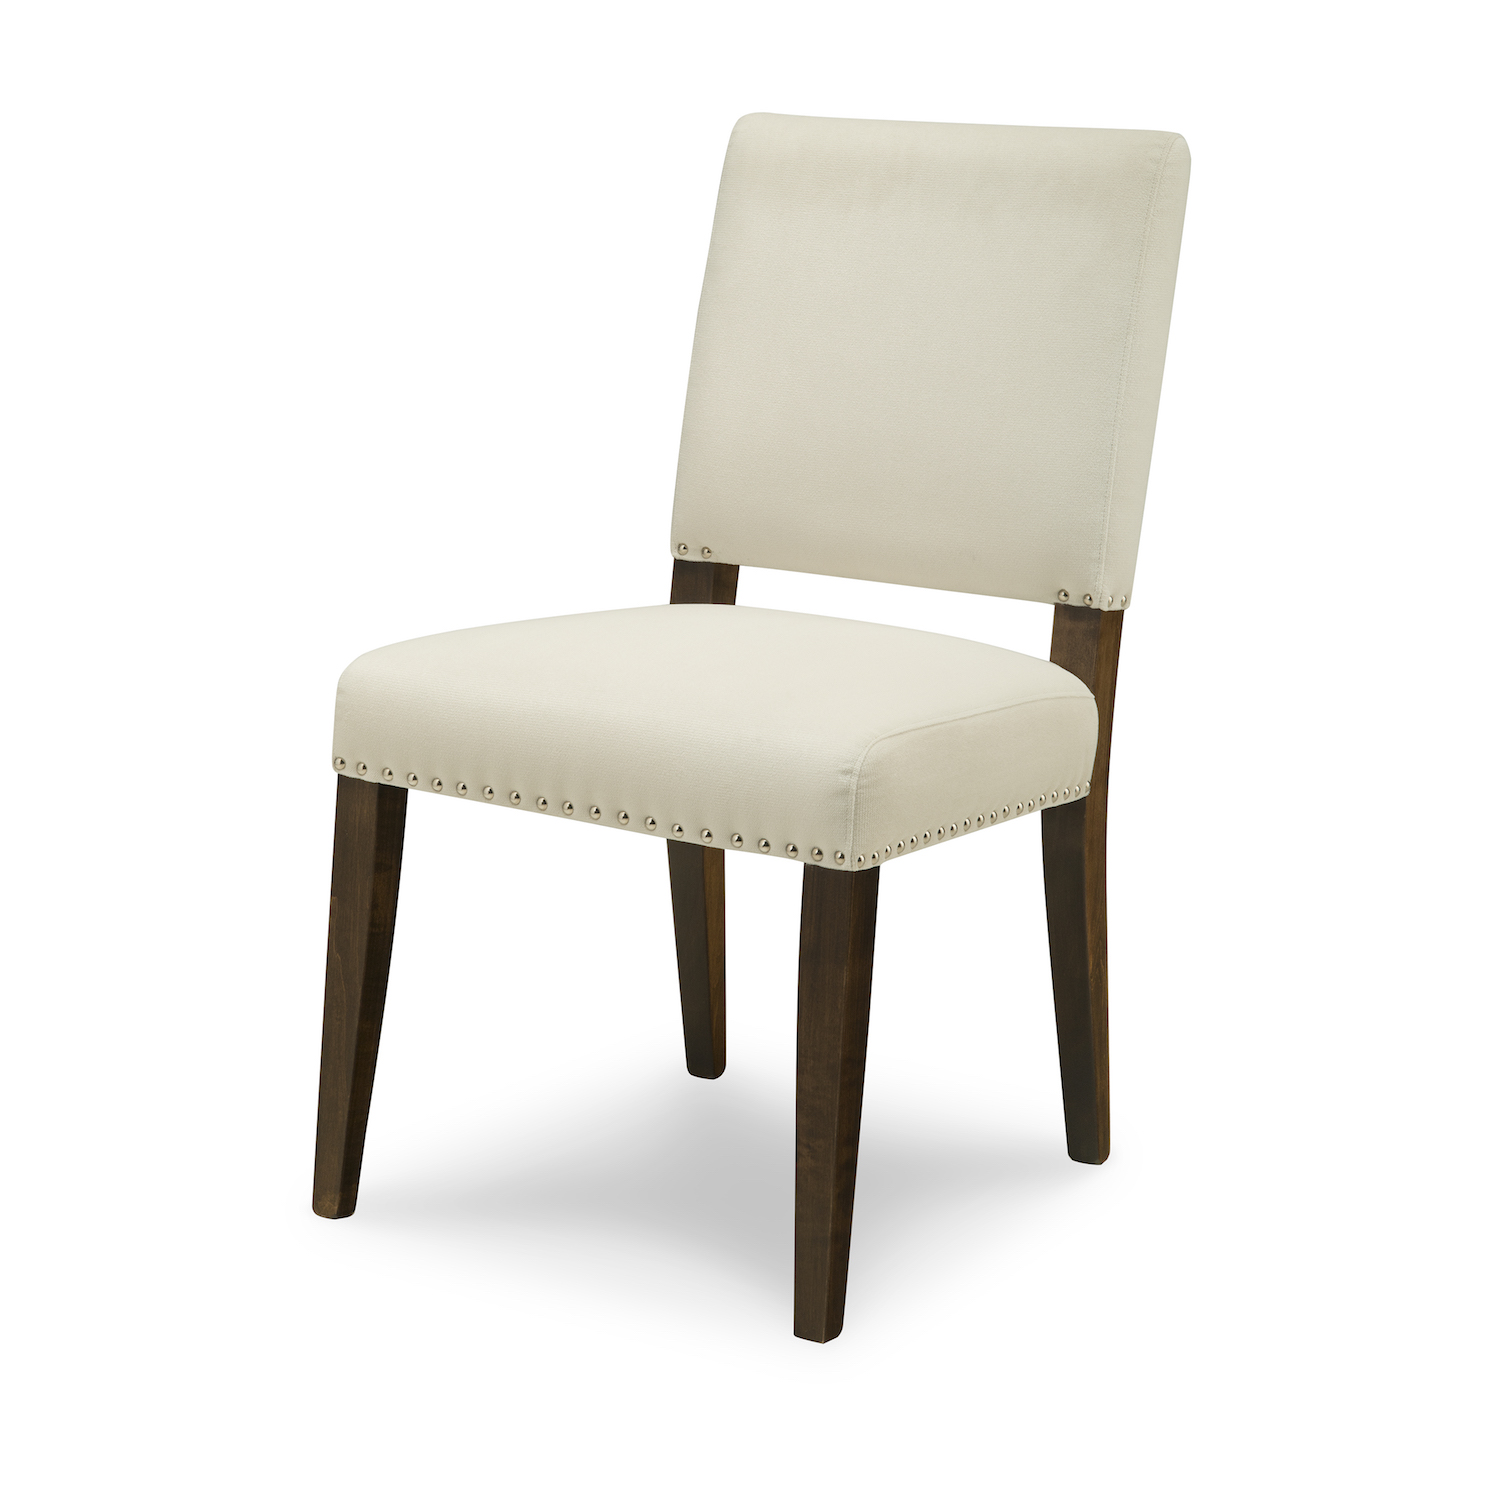 Tristan_Chair_Front_Angled.jpg